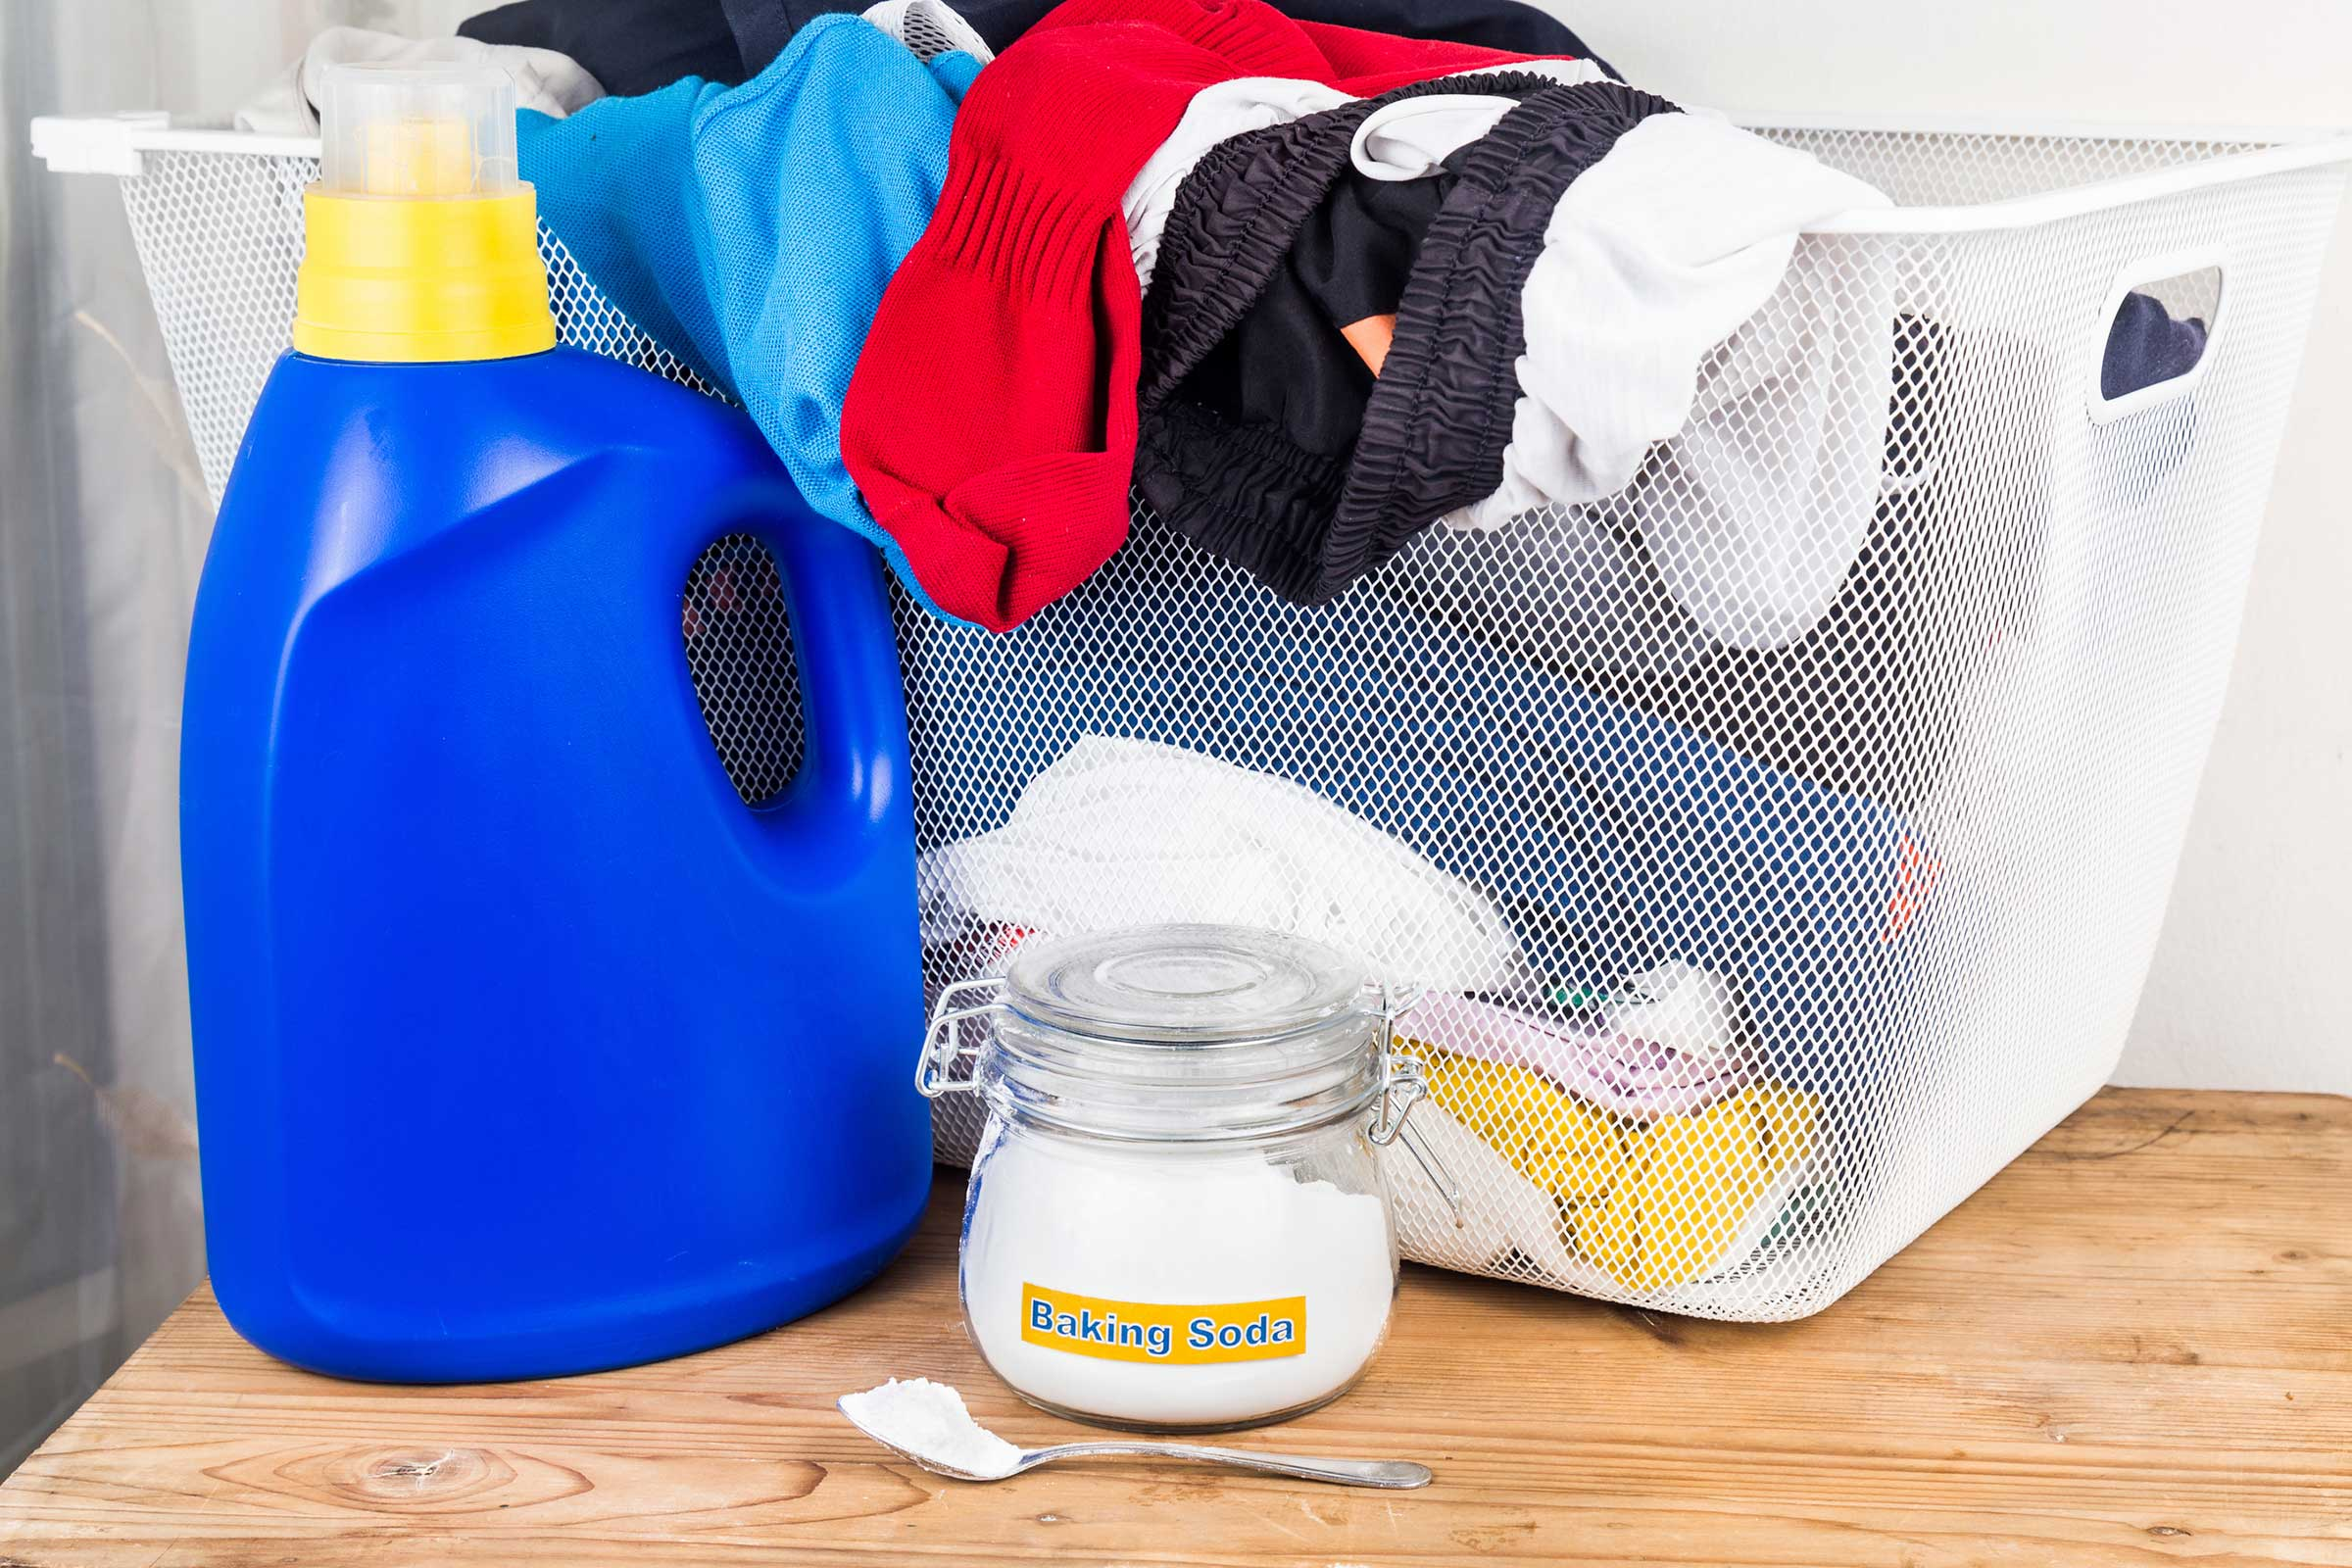 "Serves as a Laundry Detergent - Baking soda can also be used as a fabric softener in your laundry, or to get your clothes whiter and brighter. Adding 1/2 cup baking soda to your usual amount of liquid laundry detergent really will give you ""whiter whites"" and brighter colors. The baking soda also softens the water, so you can actually use less detergent. Adding 1/2 cup baking soda in top-loading machines (1/4 cup for front-loaders) also increases the potency of bleach, so you need only half the usual amount of bleach."